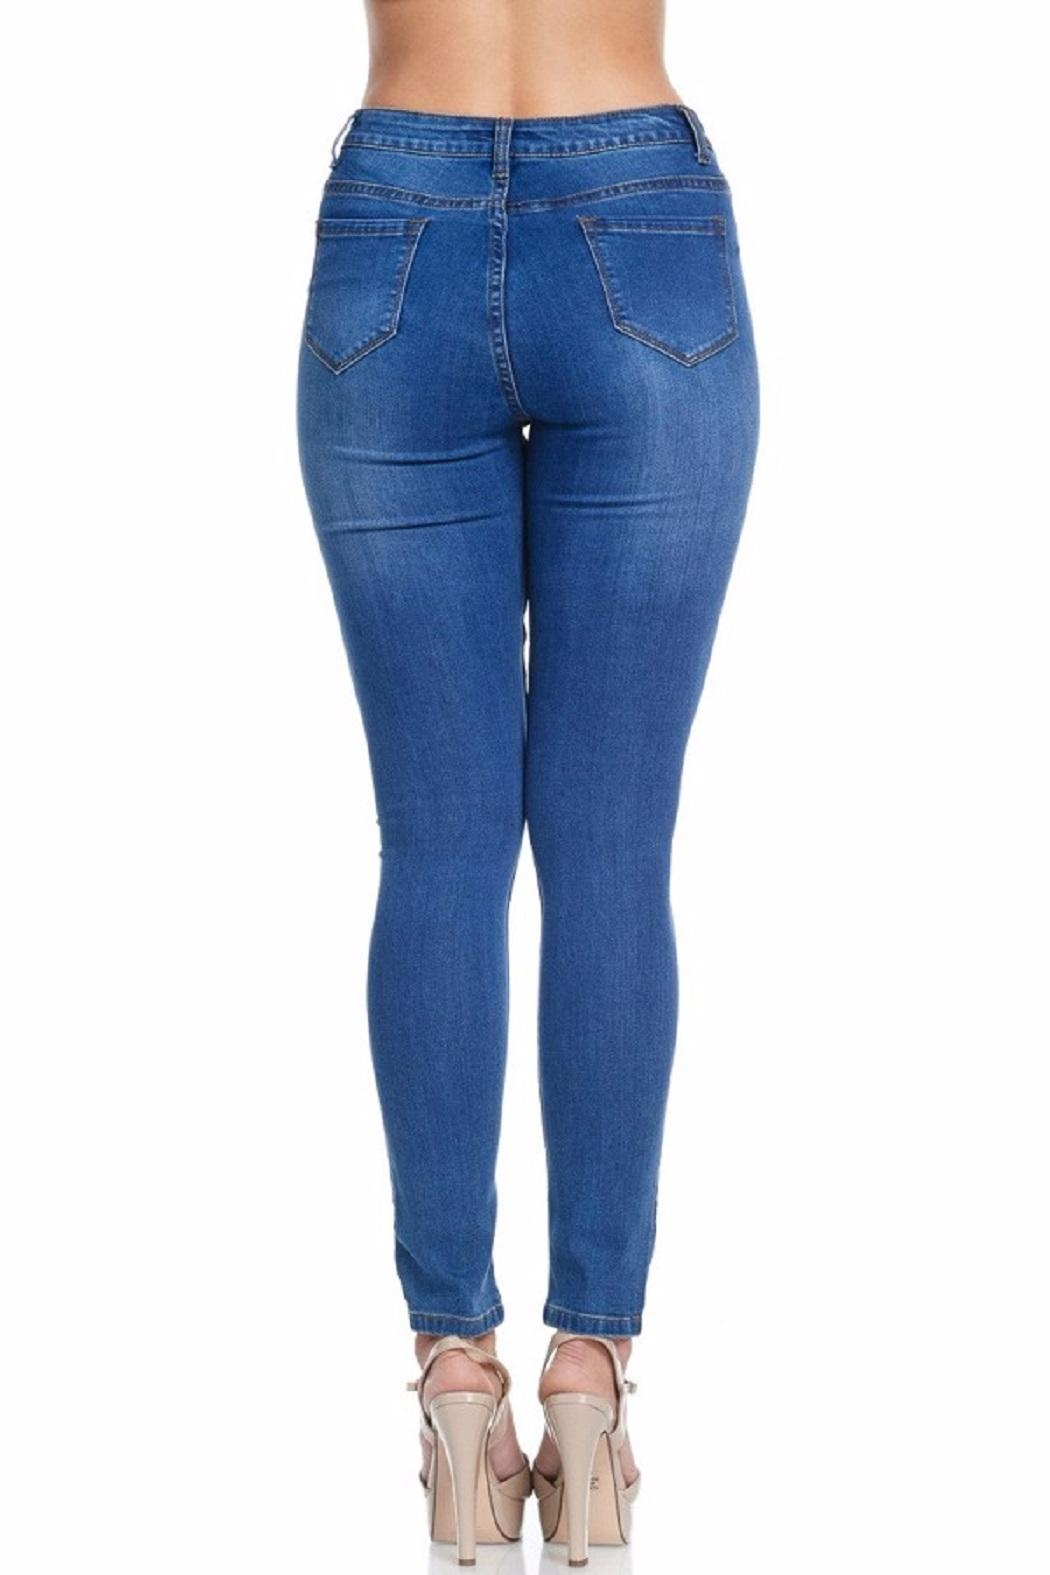 American Bazi Classic Blue Jeans - Back Cropped Image